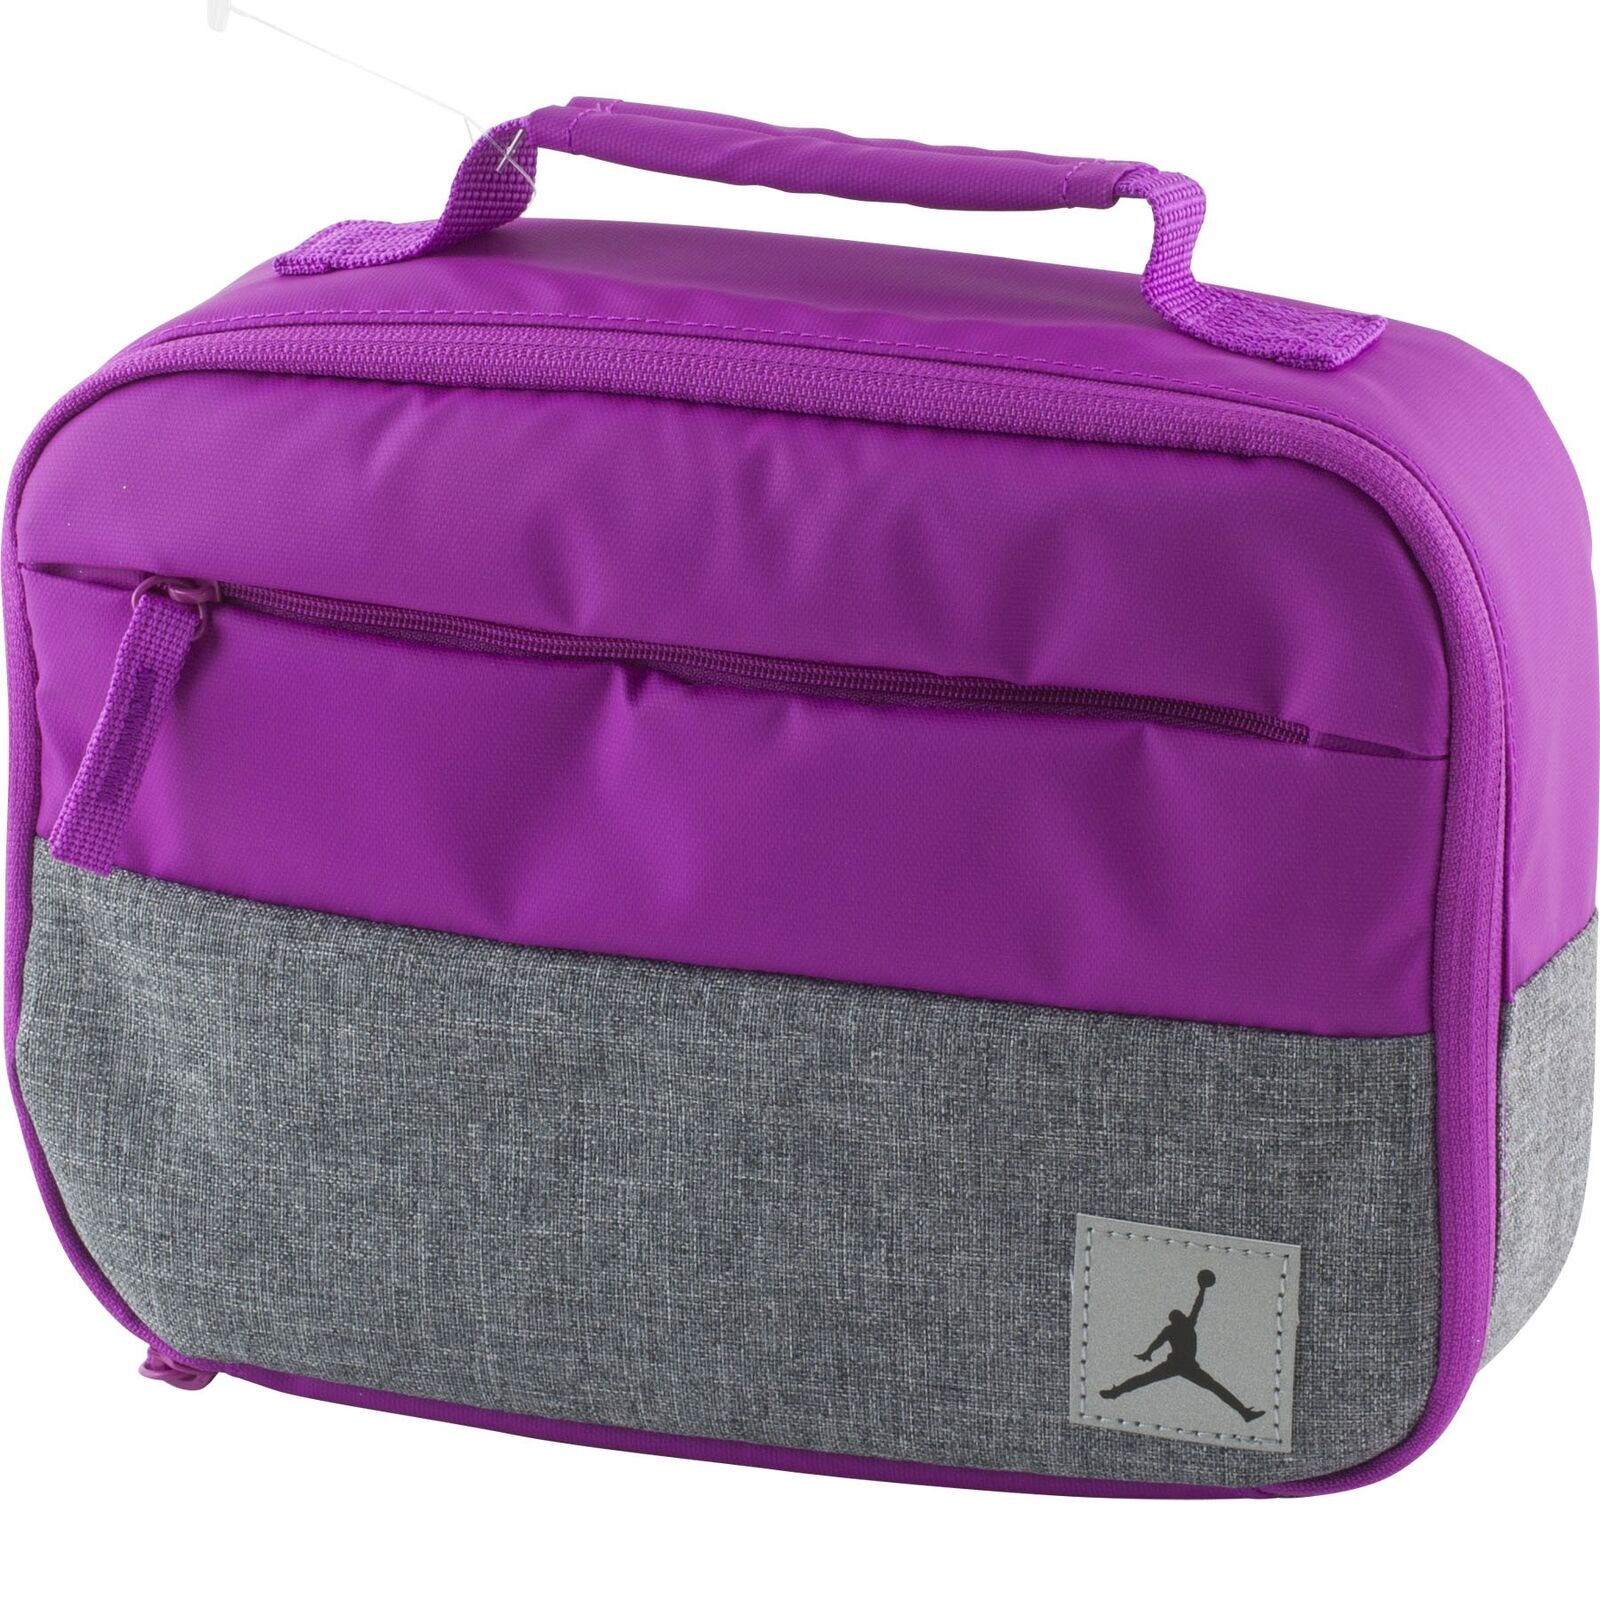 3af80aebccc Nike Air Jordan Jumpman Soft School Insulated Lunch Tote Bag Box Fuschia  Pink